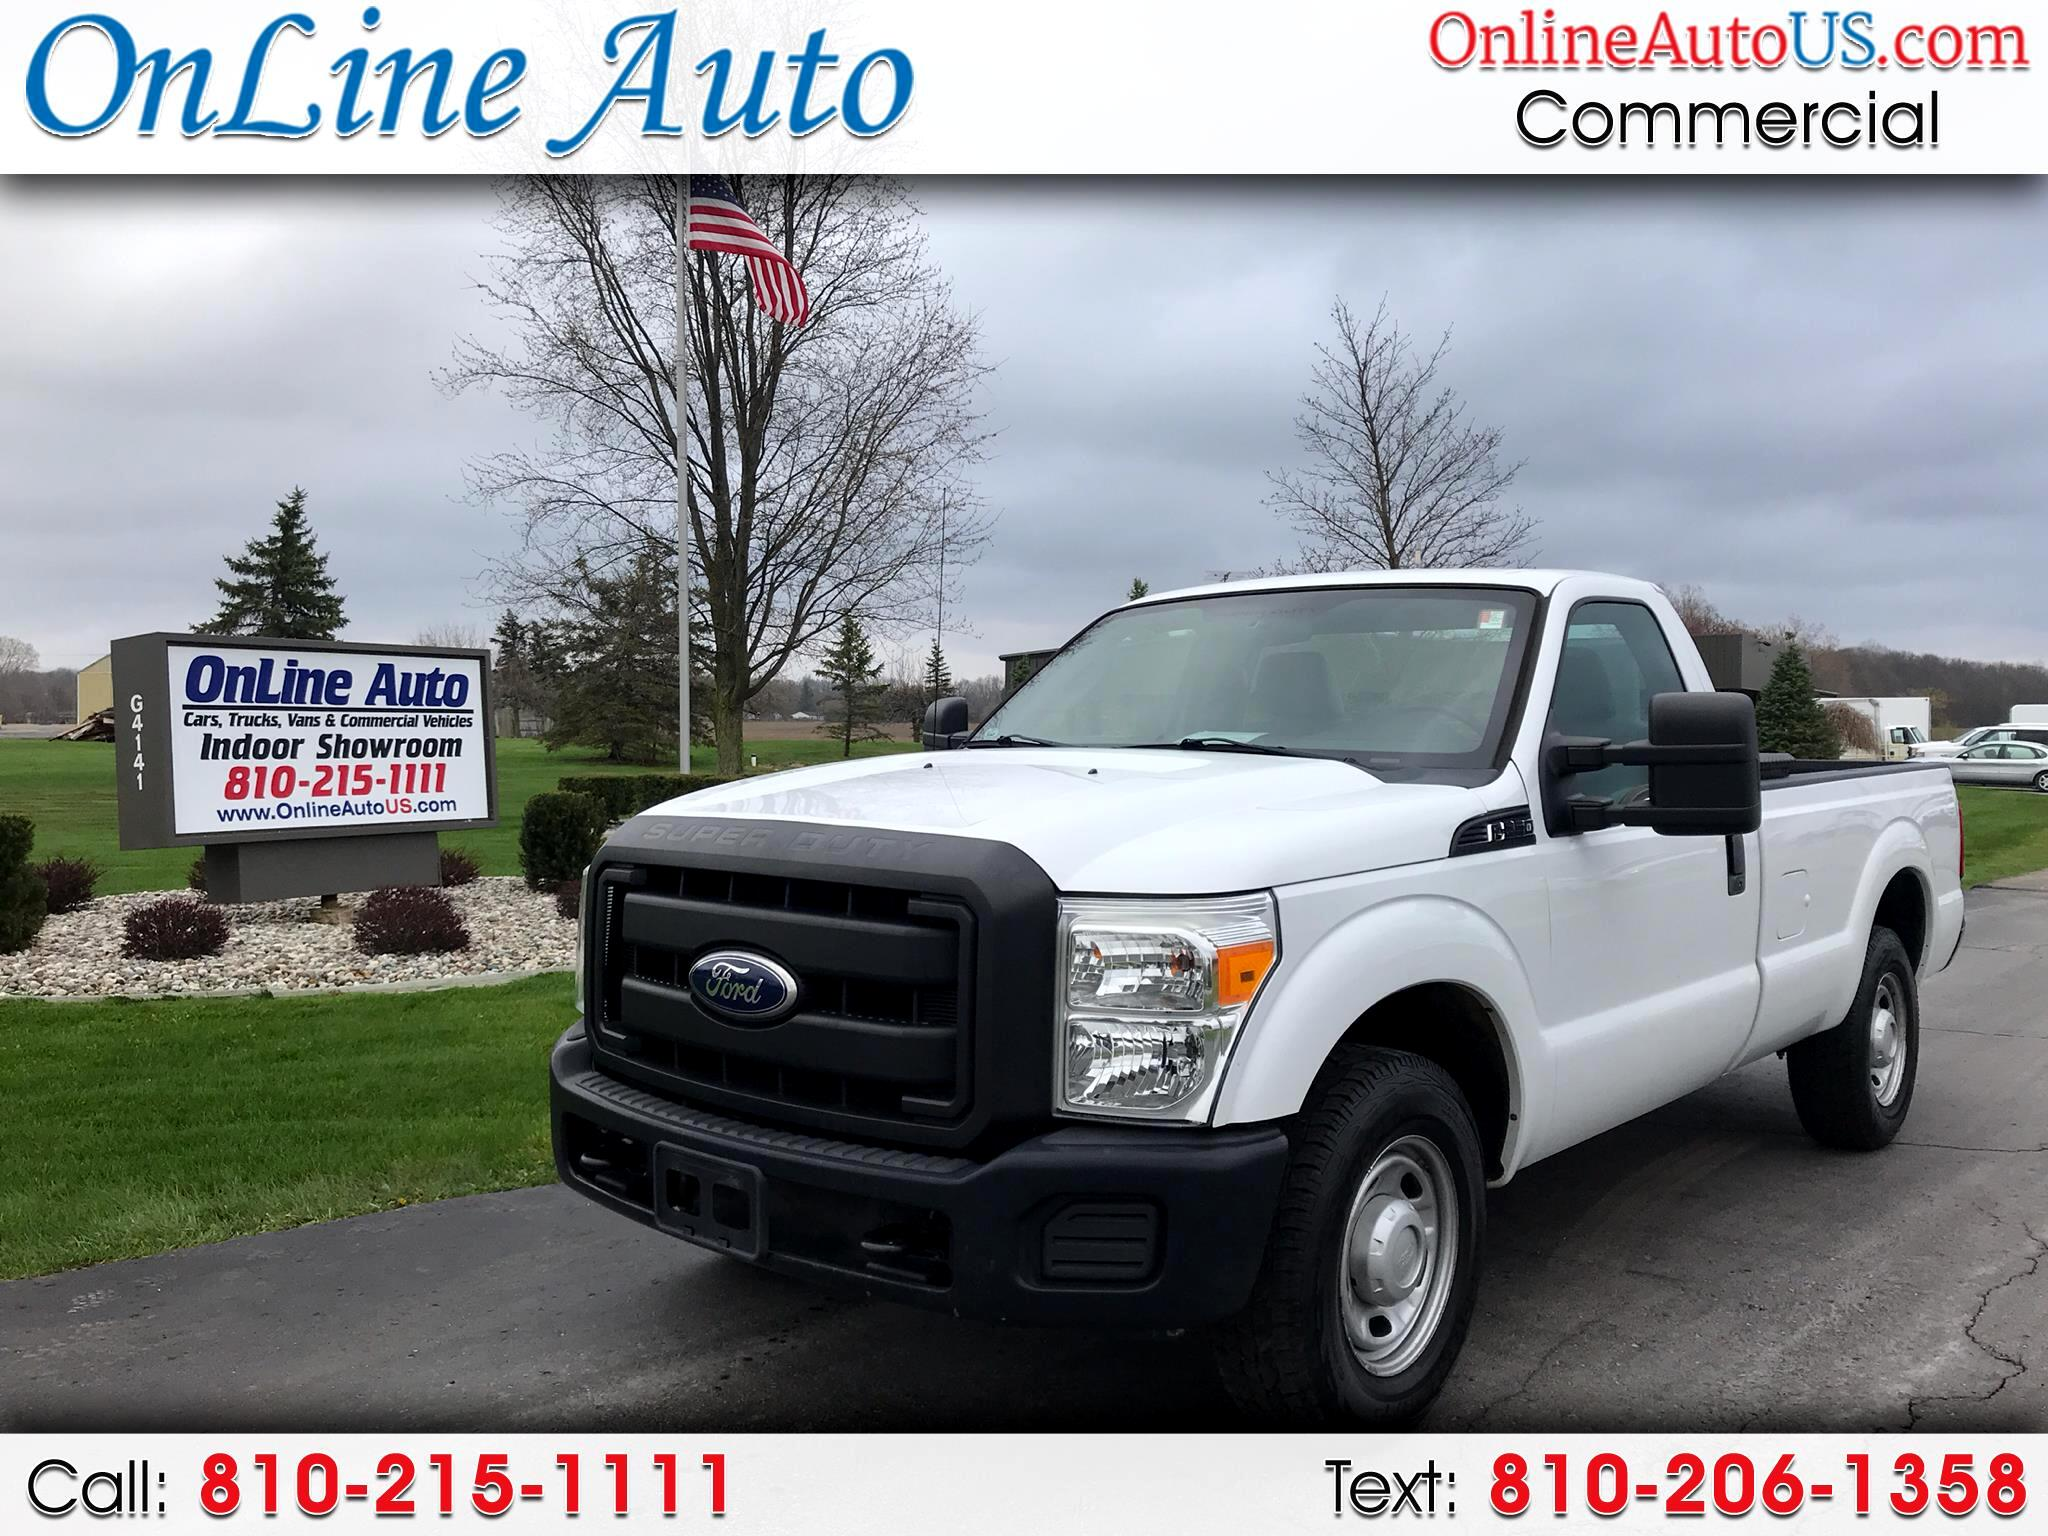 2011 Ford F-250 SUPER DUTY 8' BED  2WD